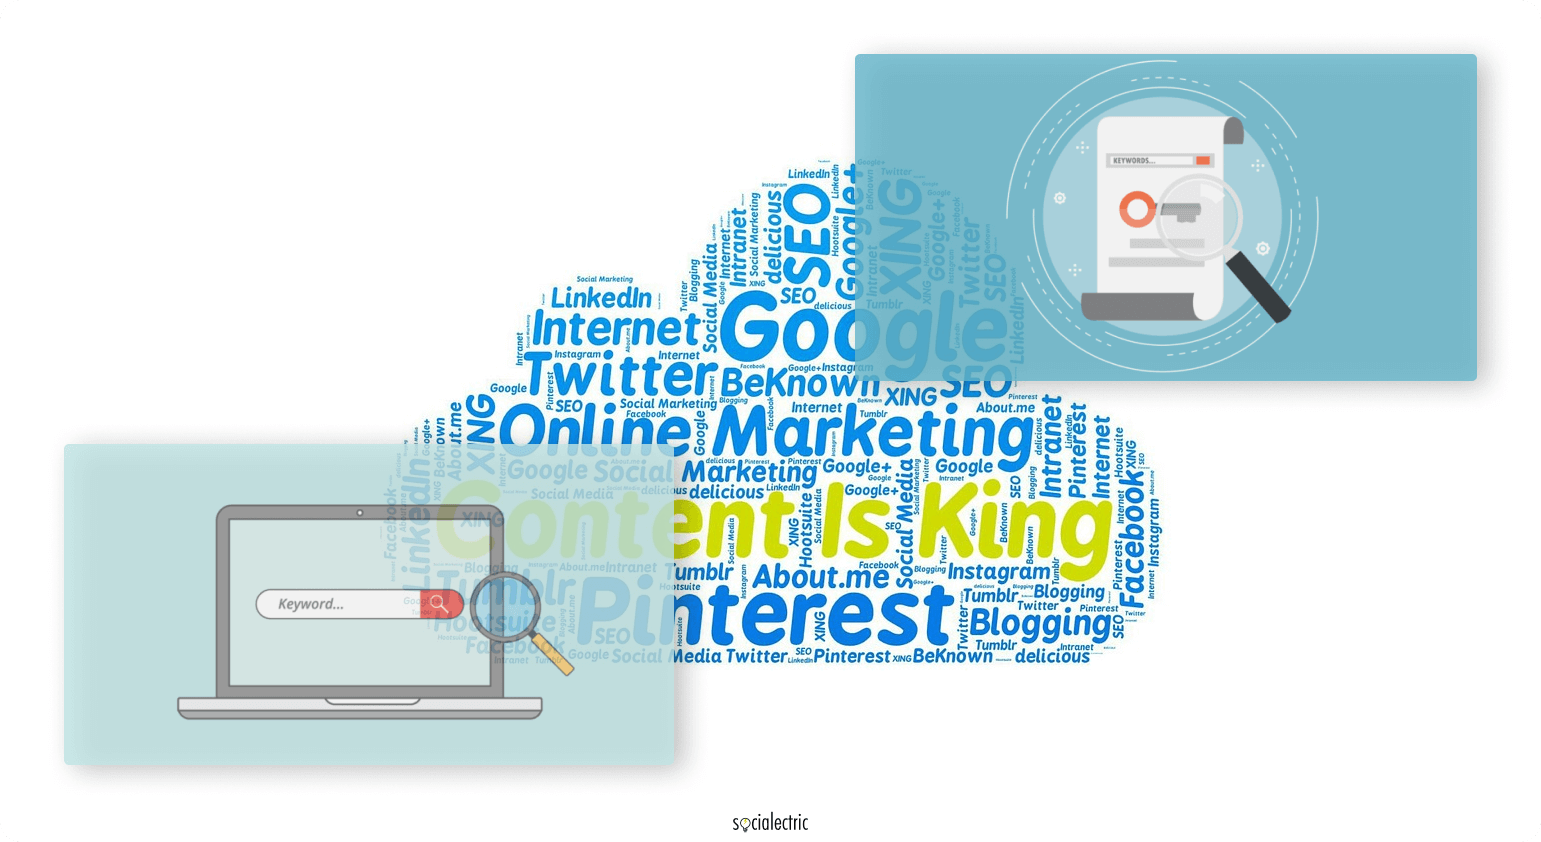 SEO-keywords-are-truly-important-for-small-business-to-grow-their-business